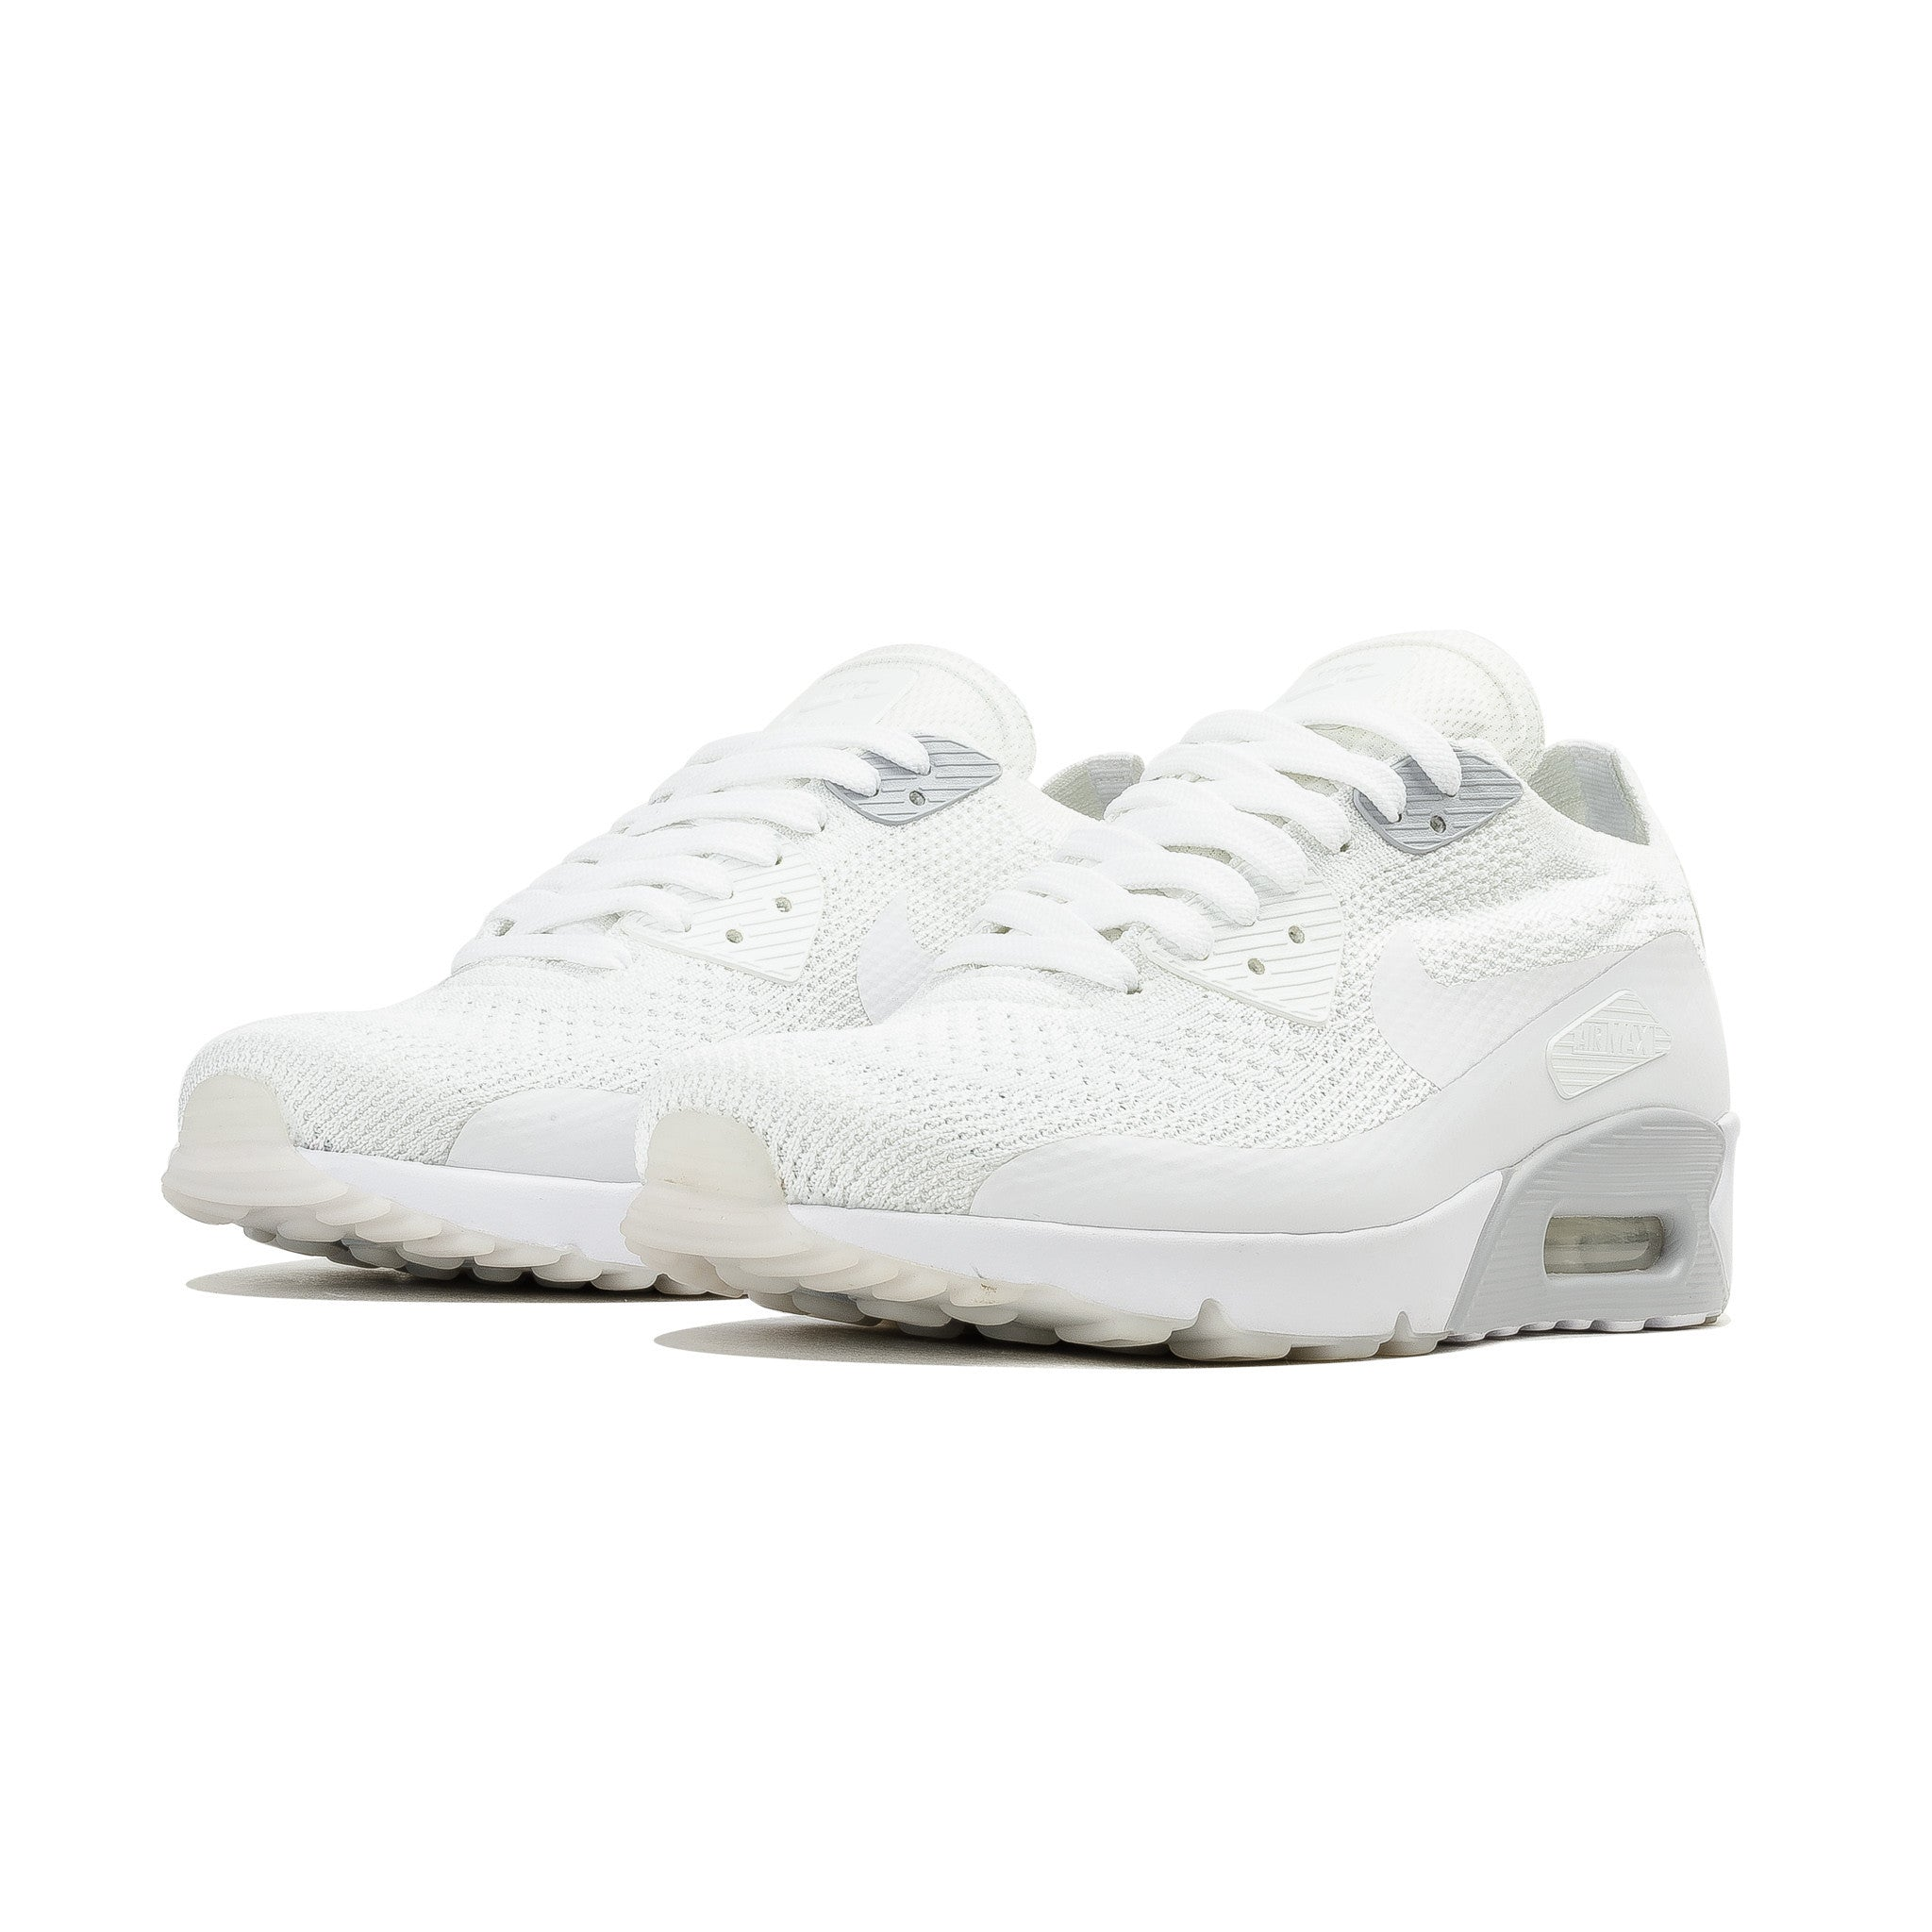 Air Max 90 Ultra 2.0 FlyKnit 875943-101 White